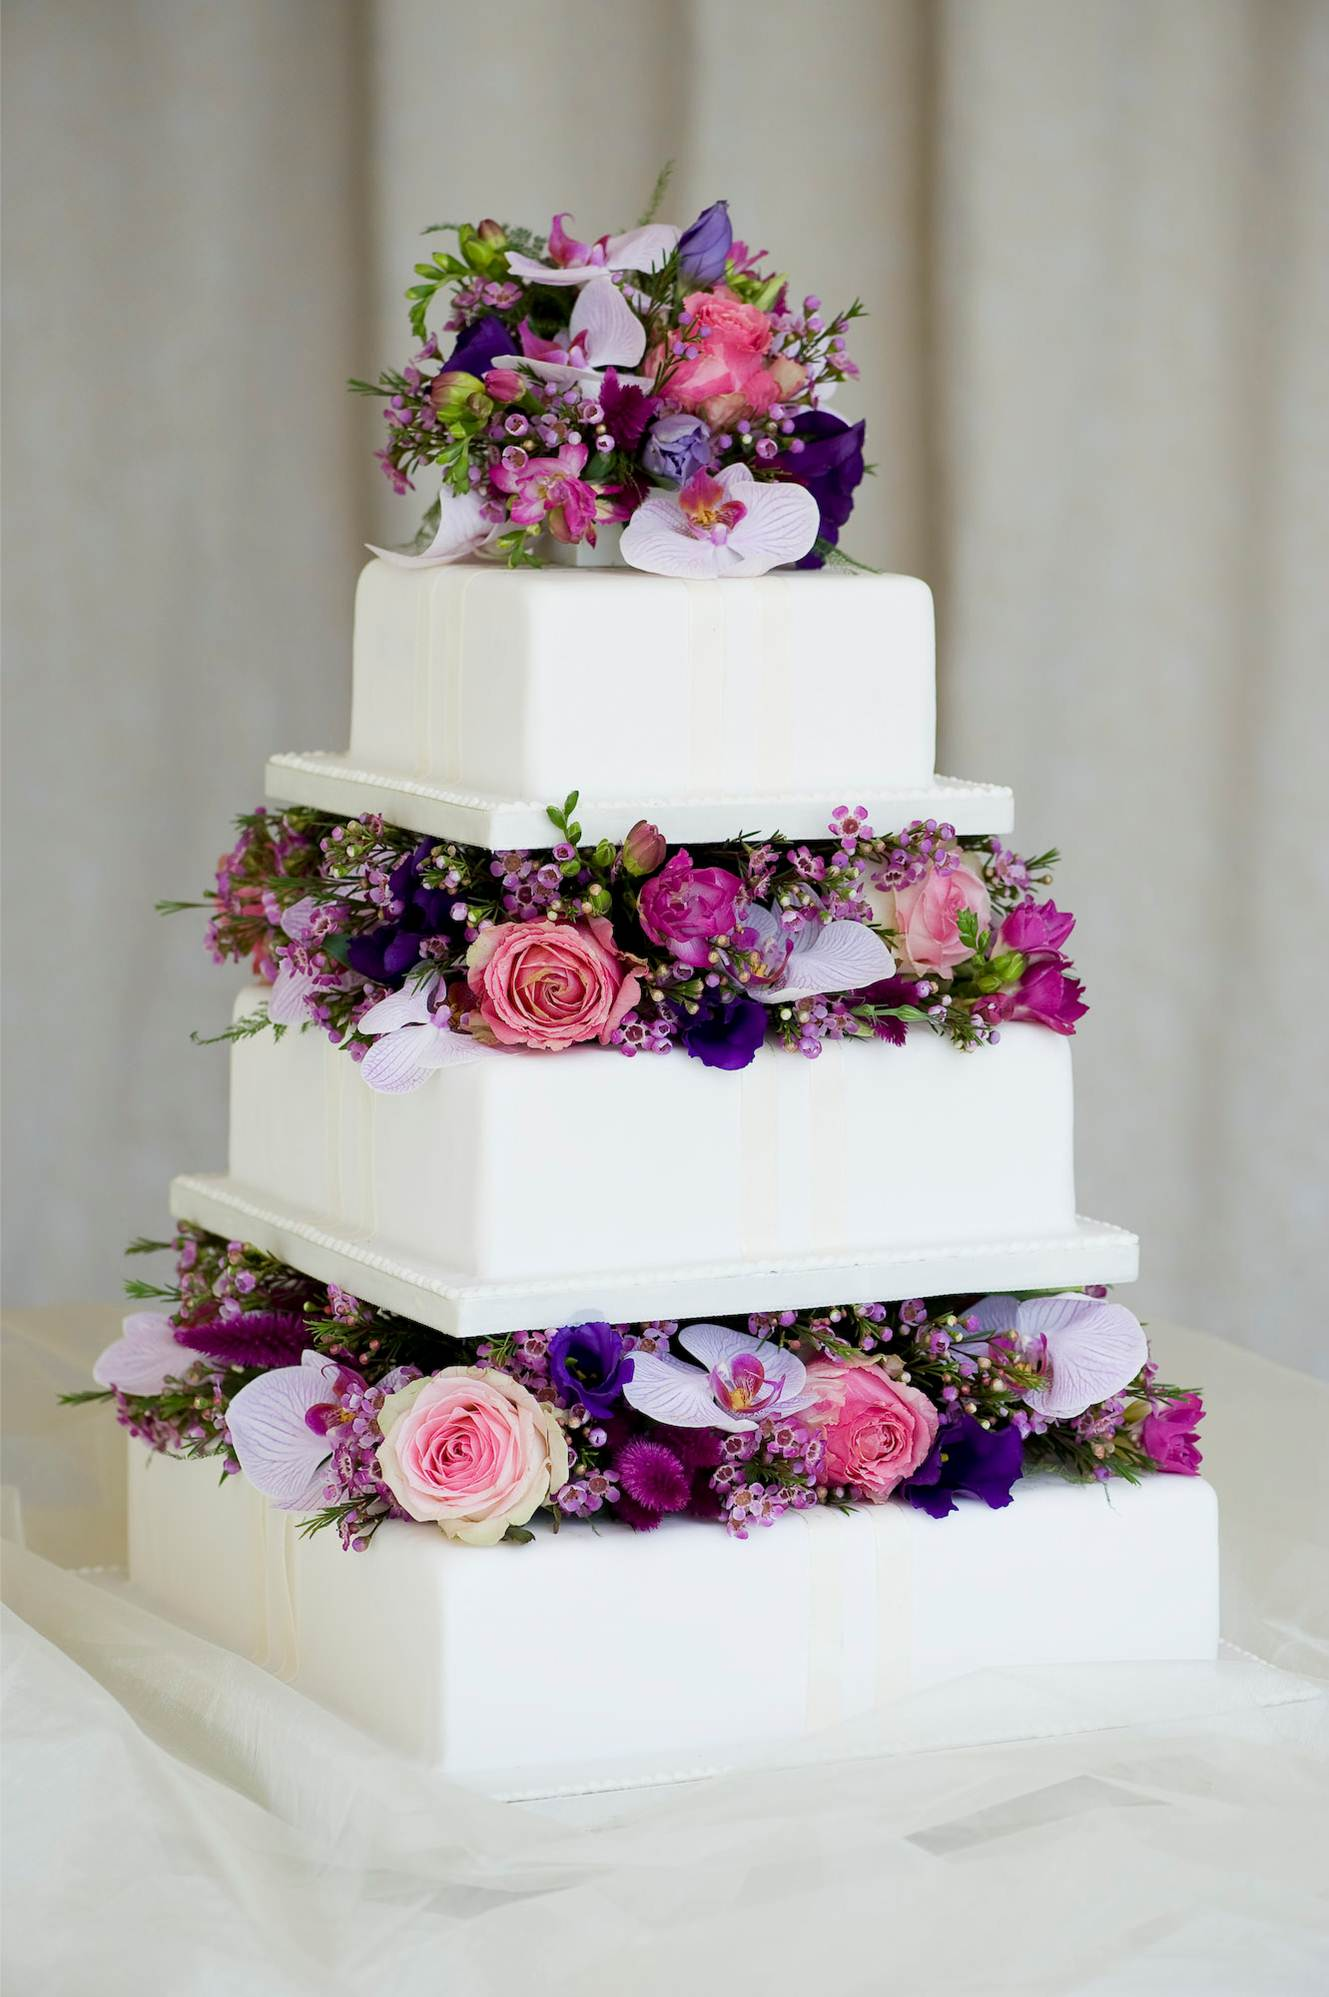 Wedding Cake Images With Fresh Flowers : Weddings in Malta   English Wedding Planner in Malta ...